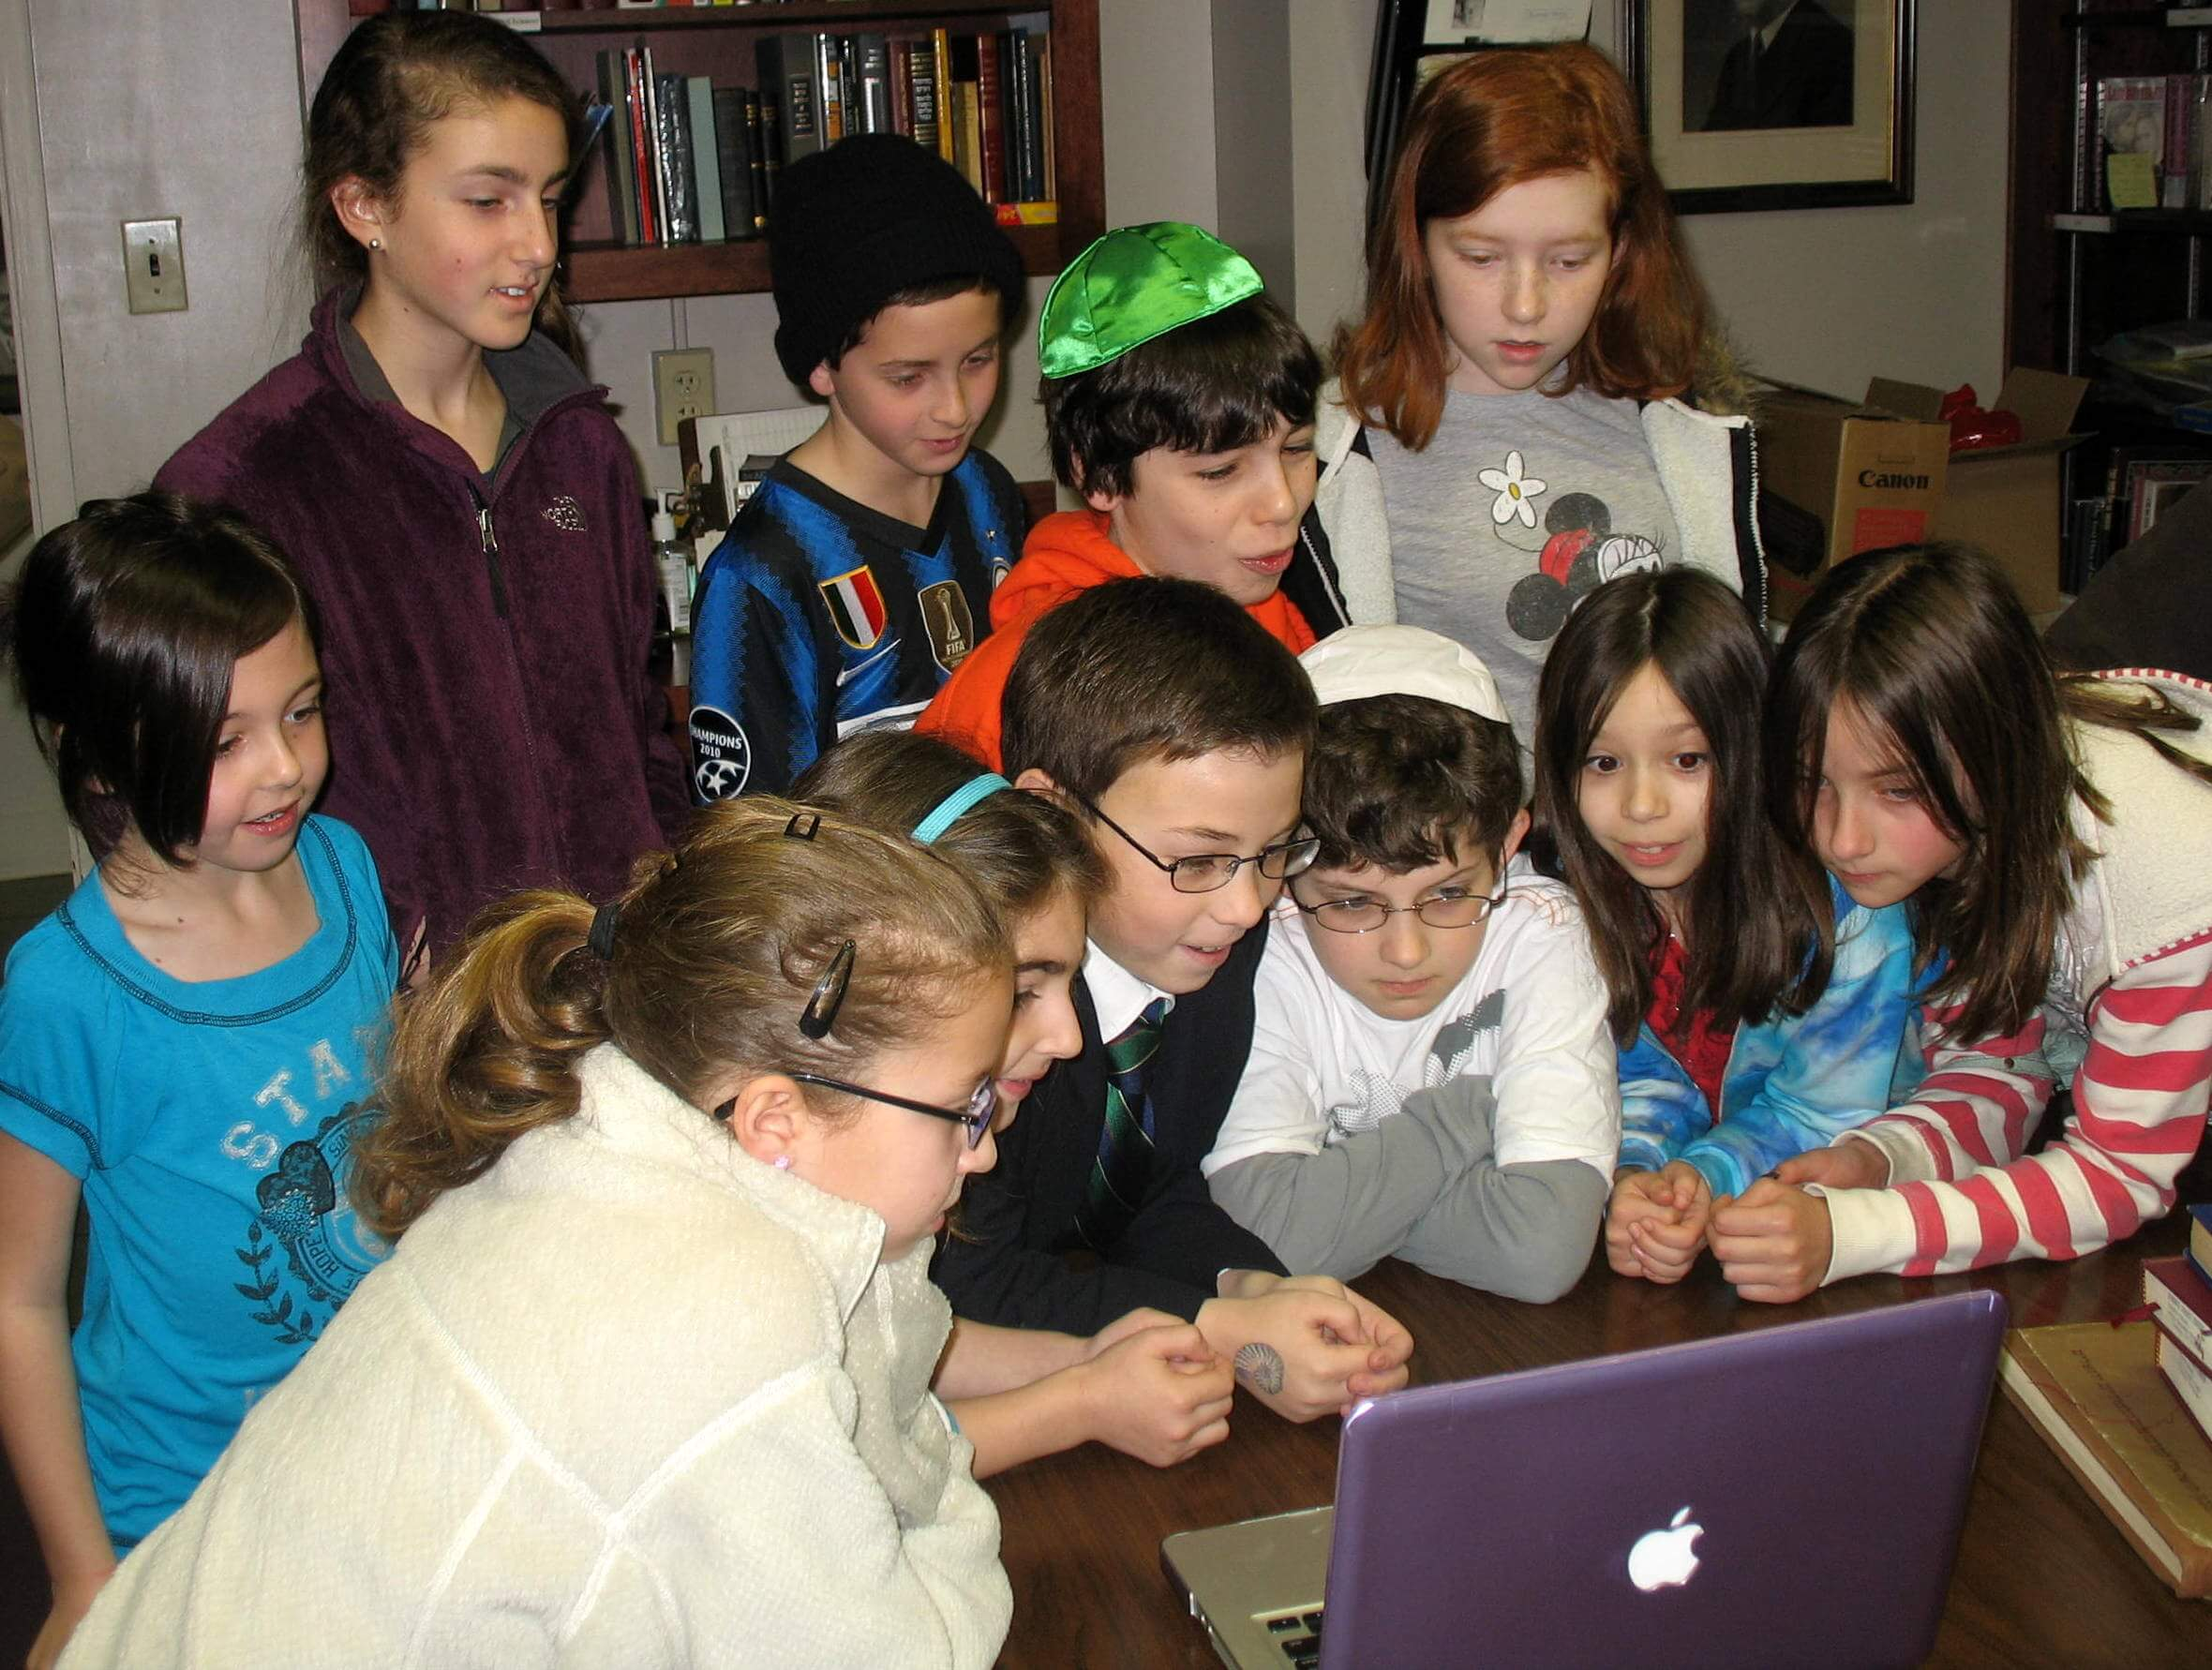 web-kids-skyping